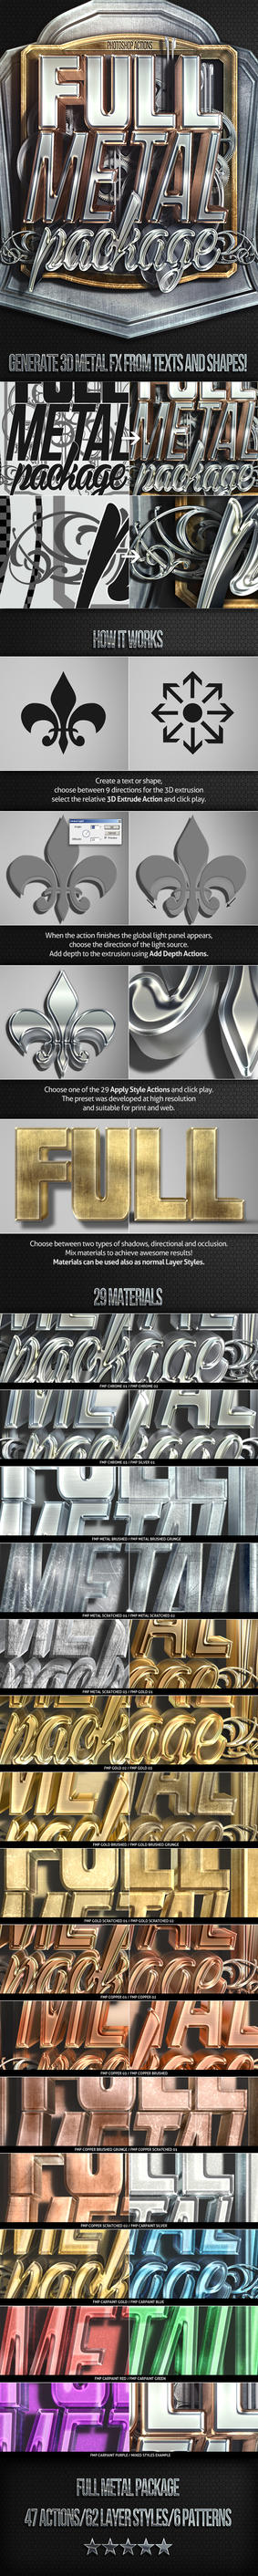 Full Metal Package 3D - Photoshop Actions by NuwanP